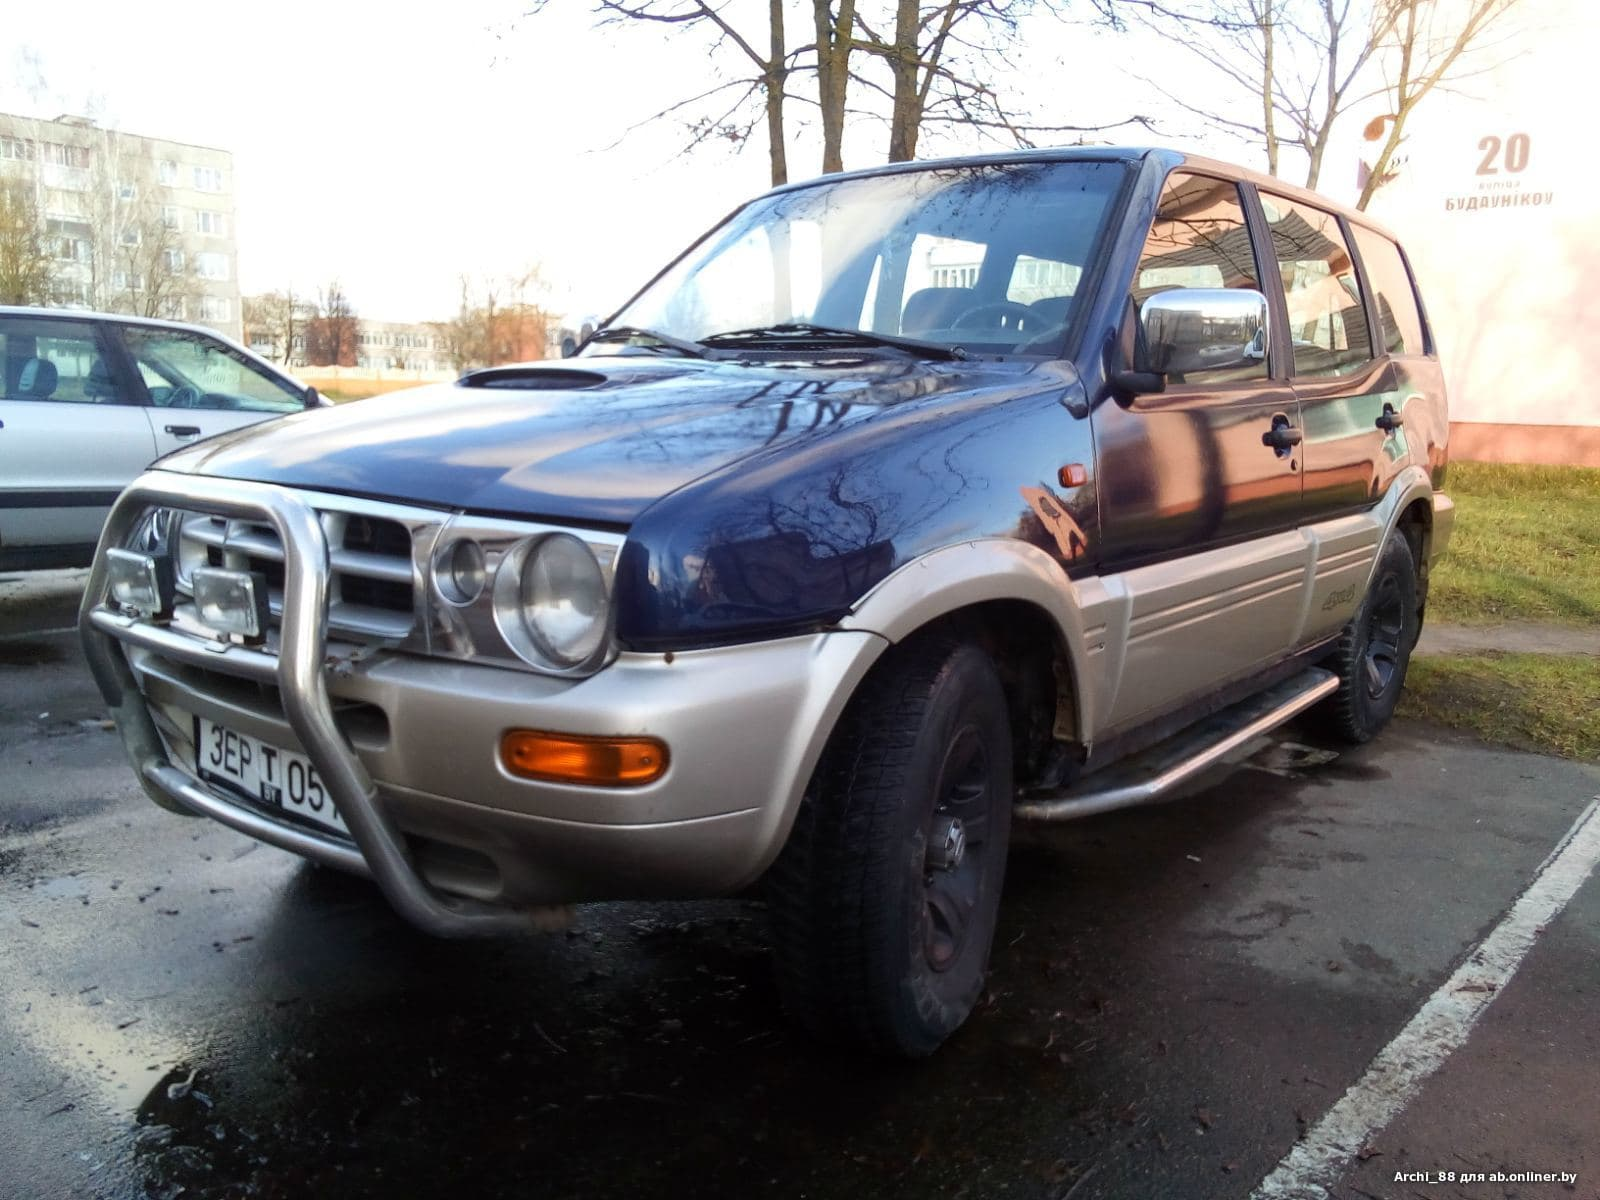 Nissan Terrano R-20 restyling